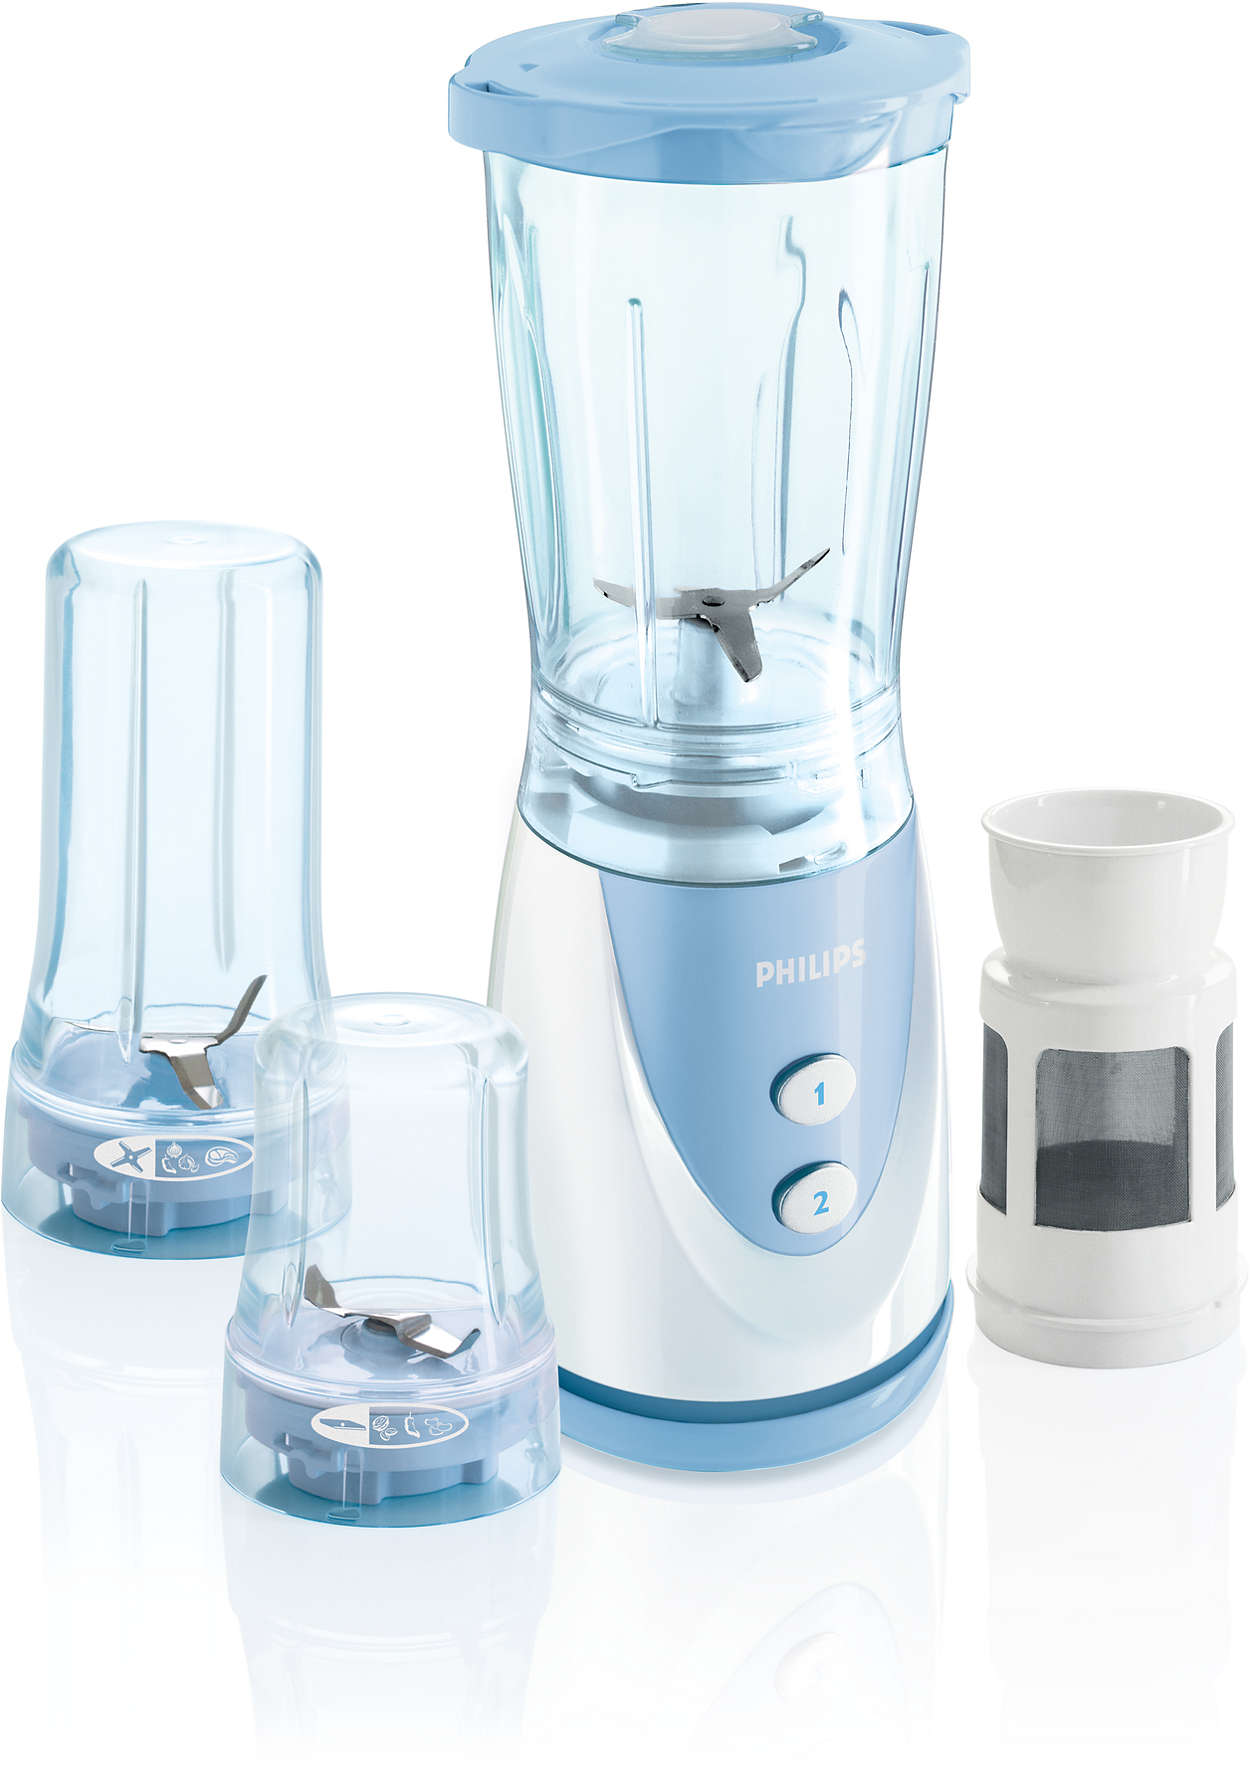 Mini Blender Hr2870 00 Philips Mixer